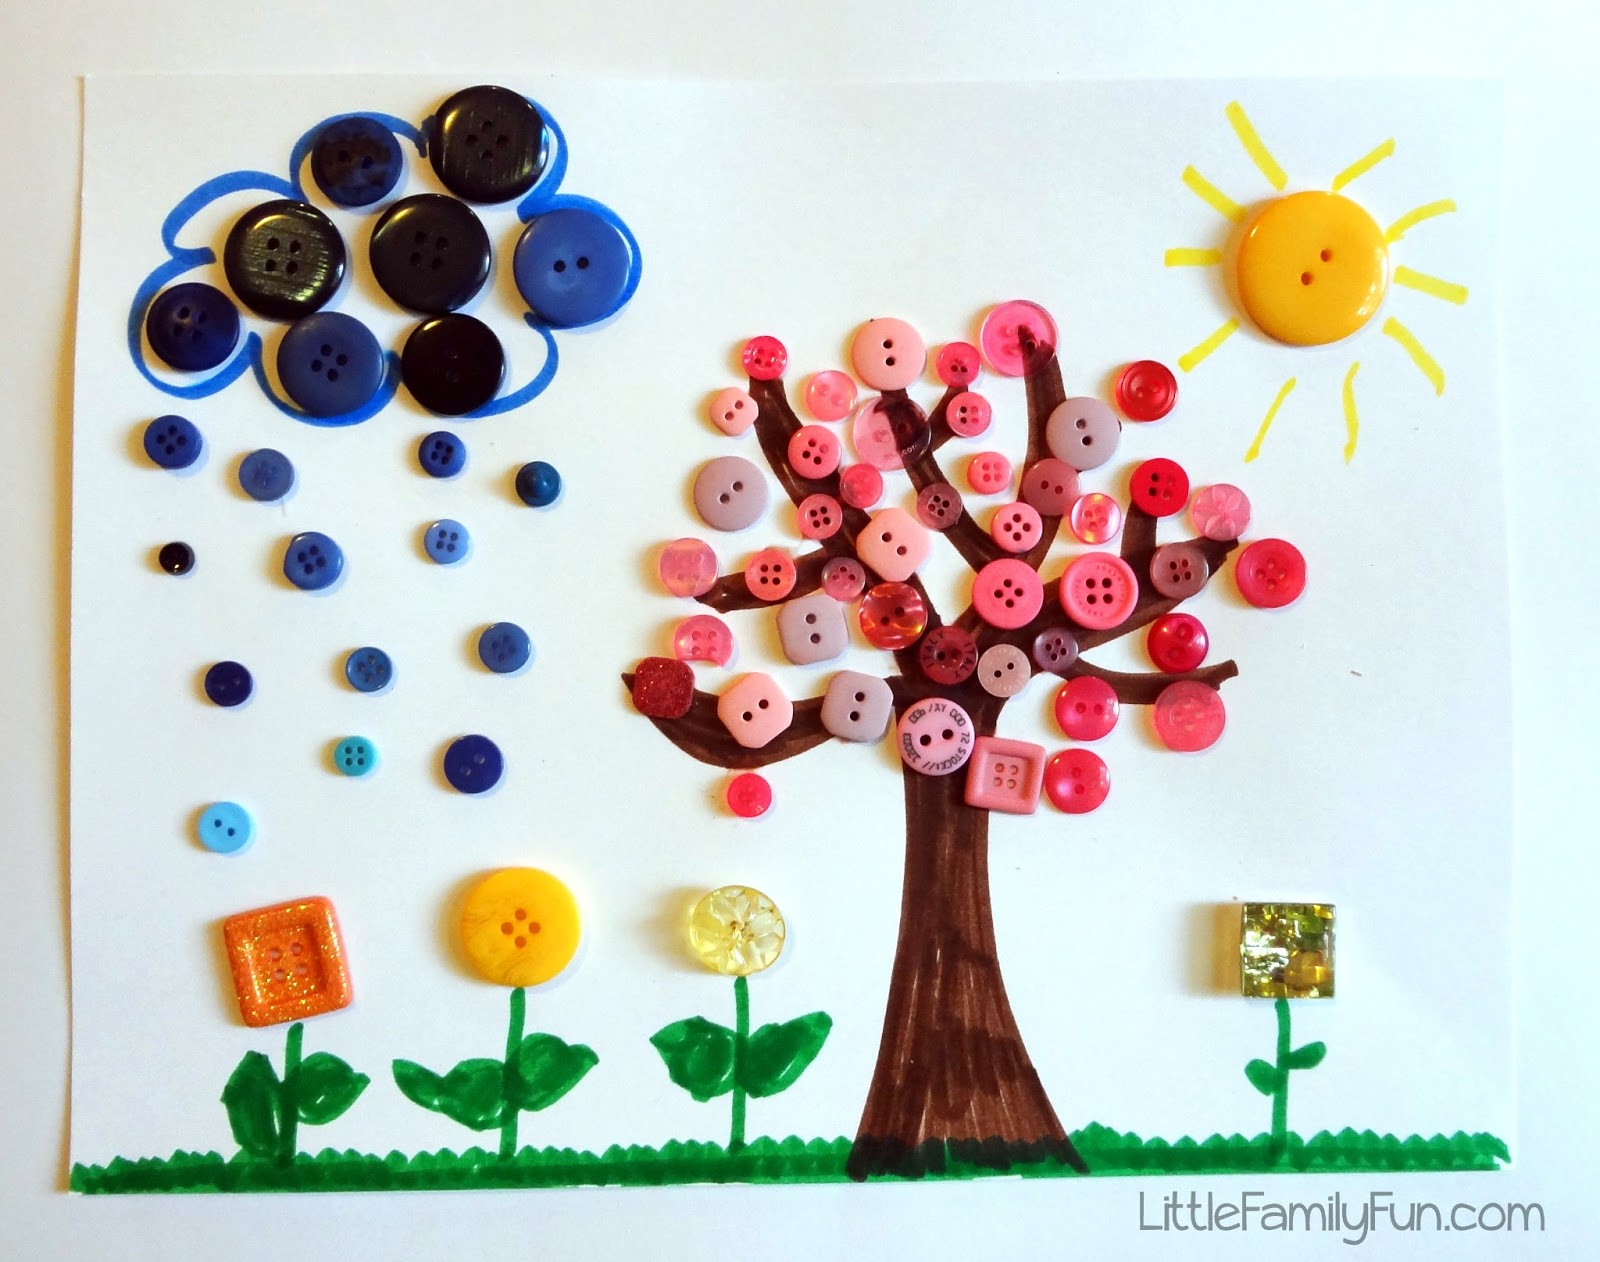 Best ideas about Arts And Crafts For Little Kids . Save or Pin Spring Button Craft for Kids Now.